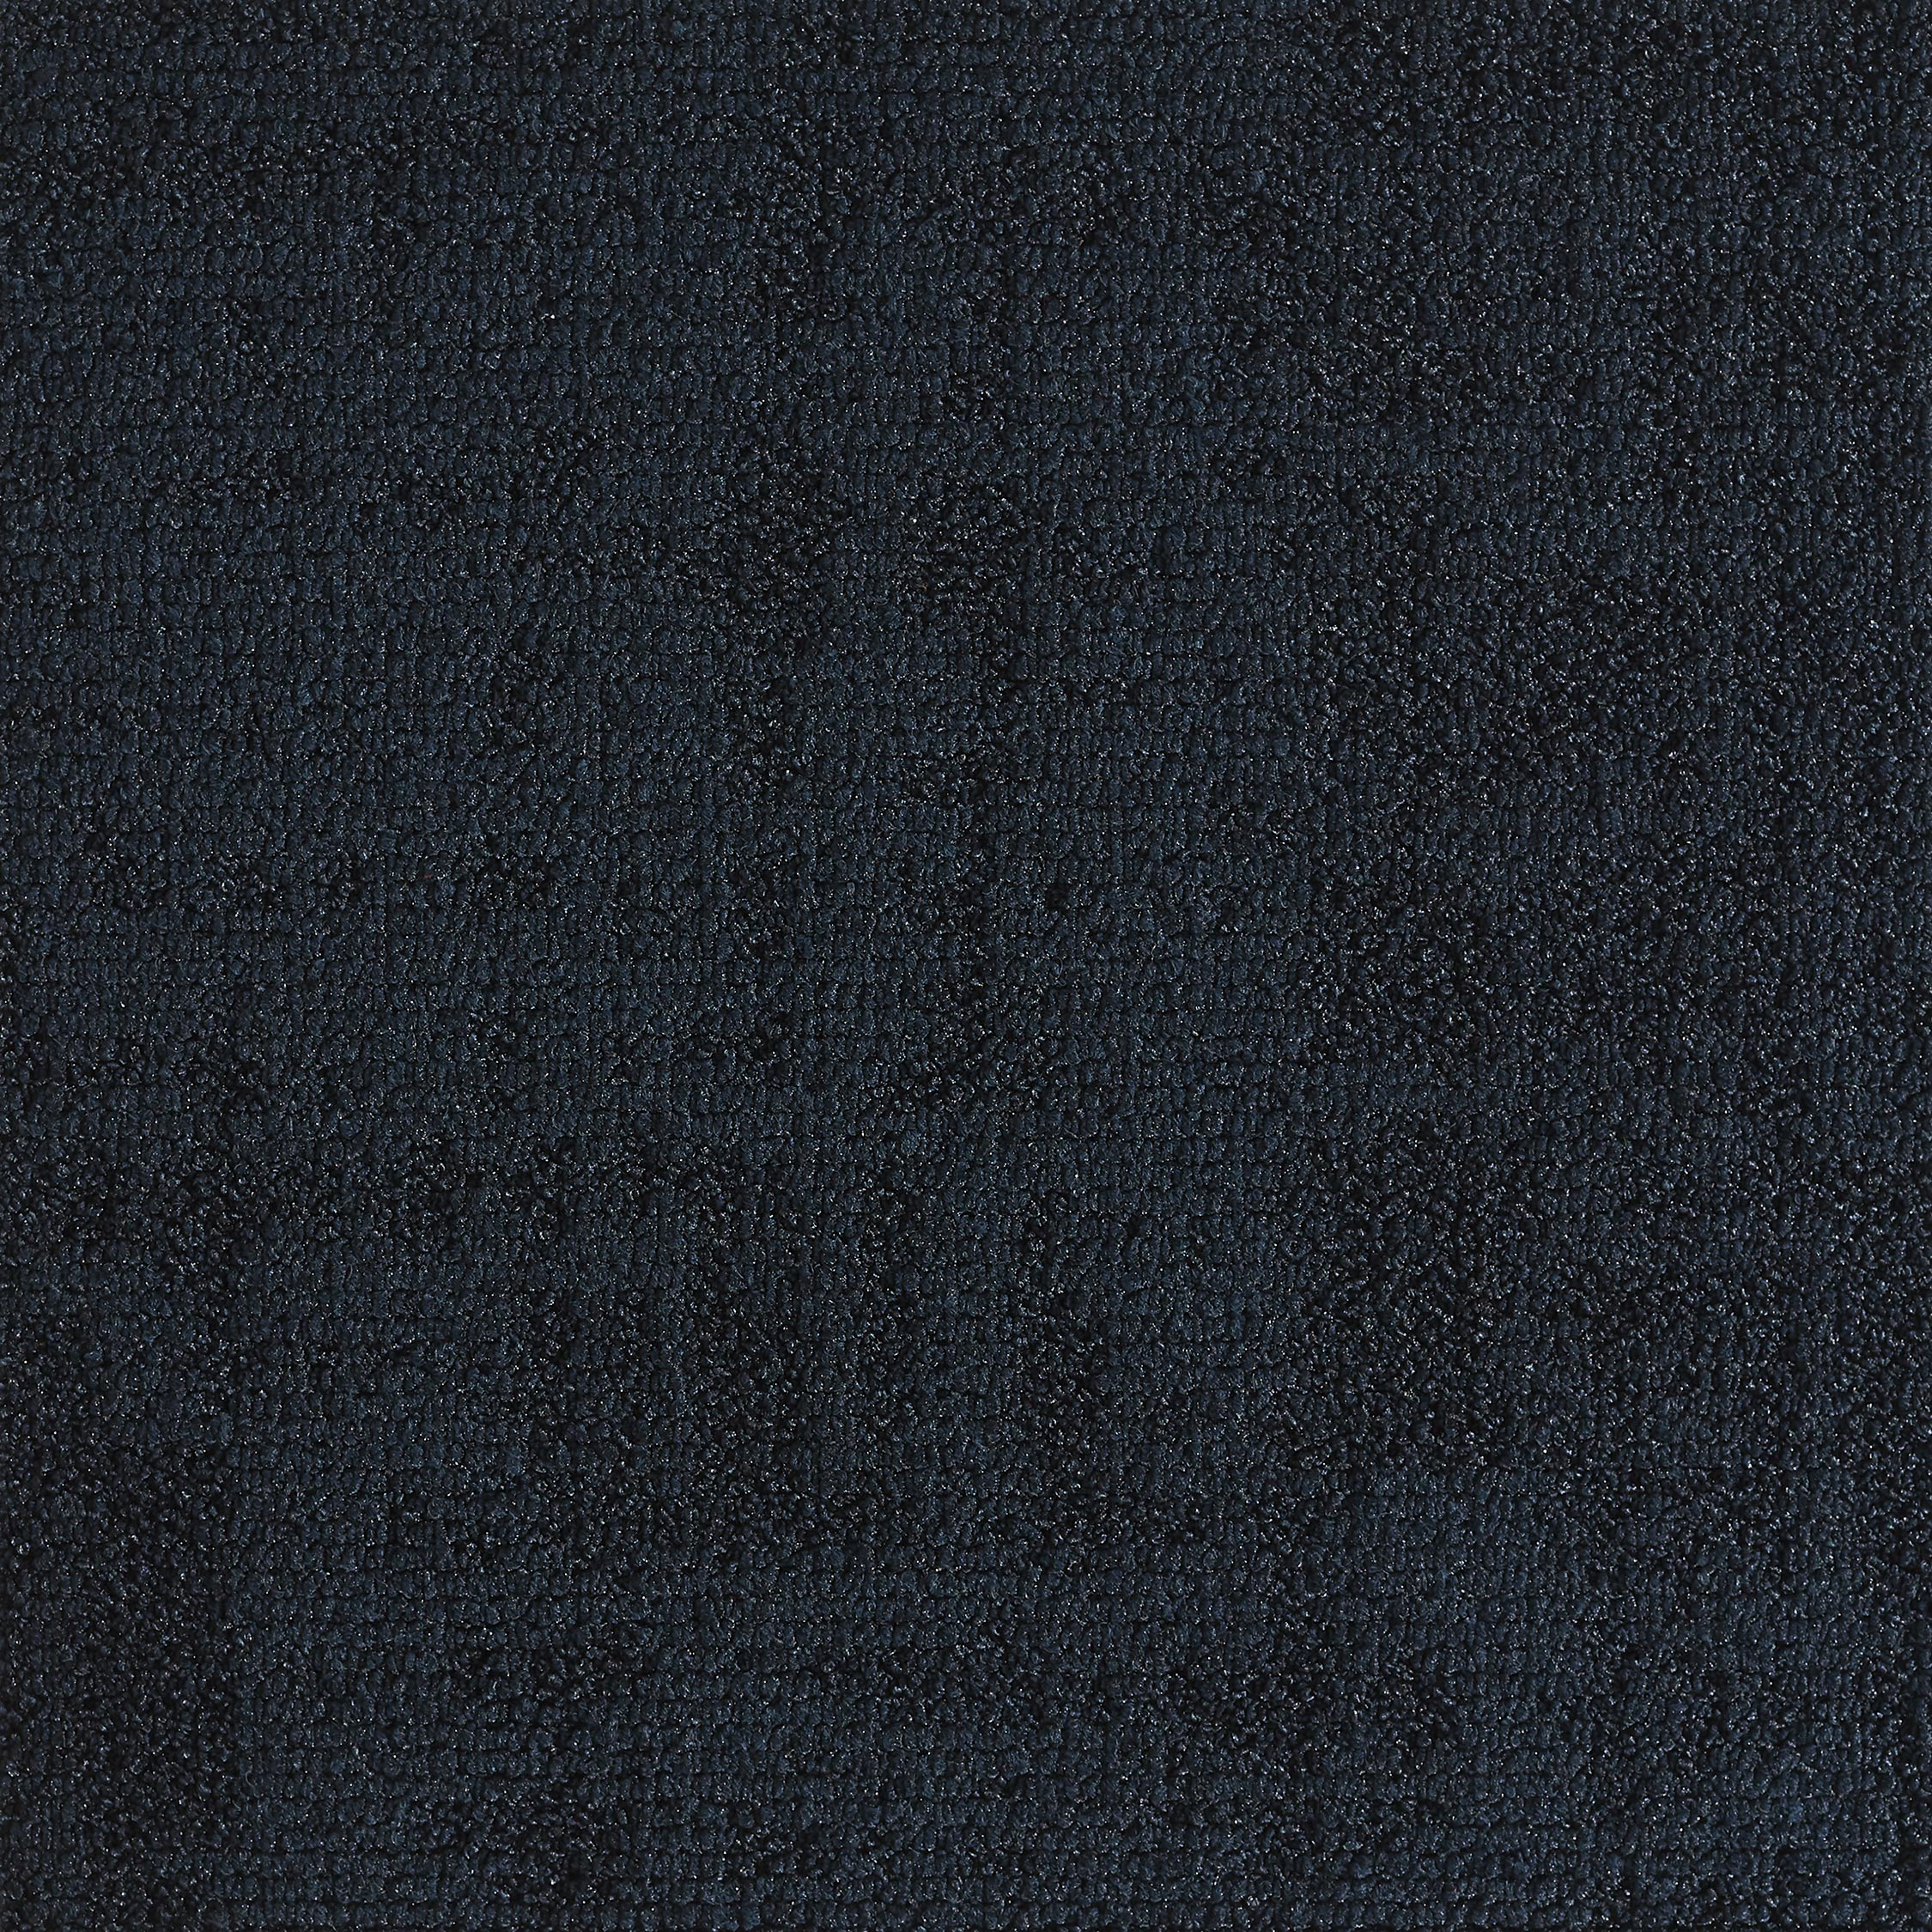 ReForm Mano ECT350 dark blue